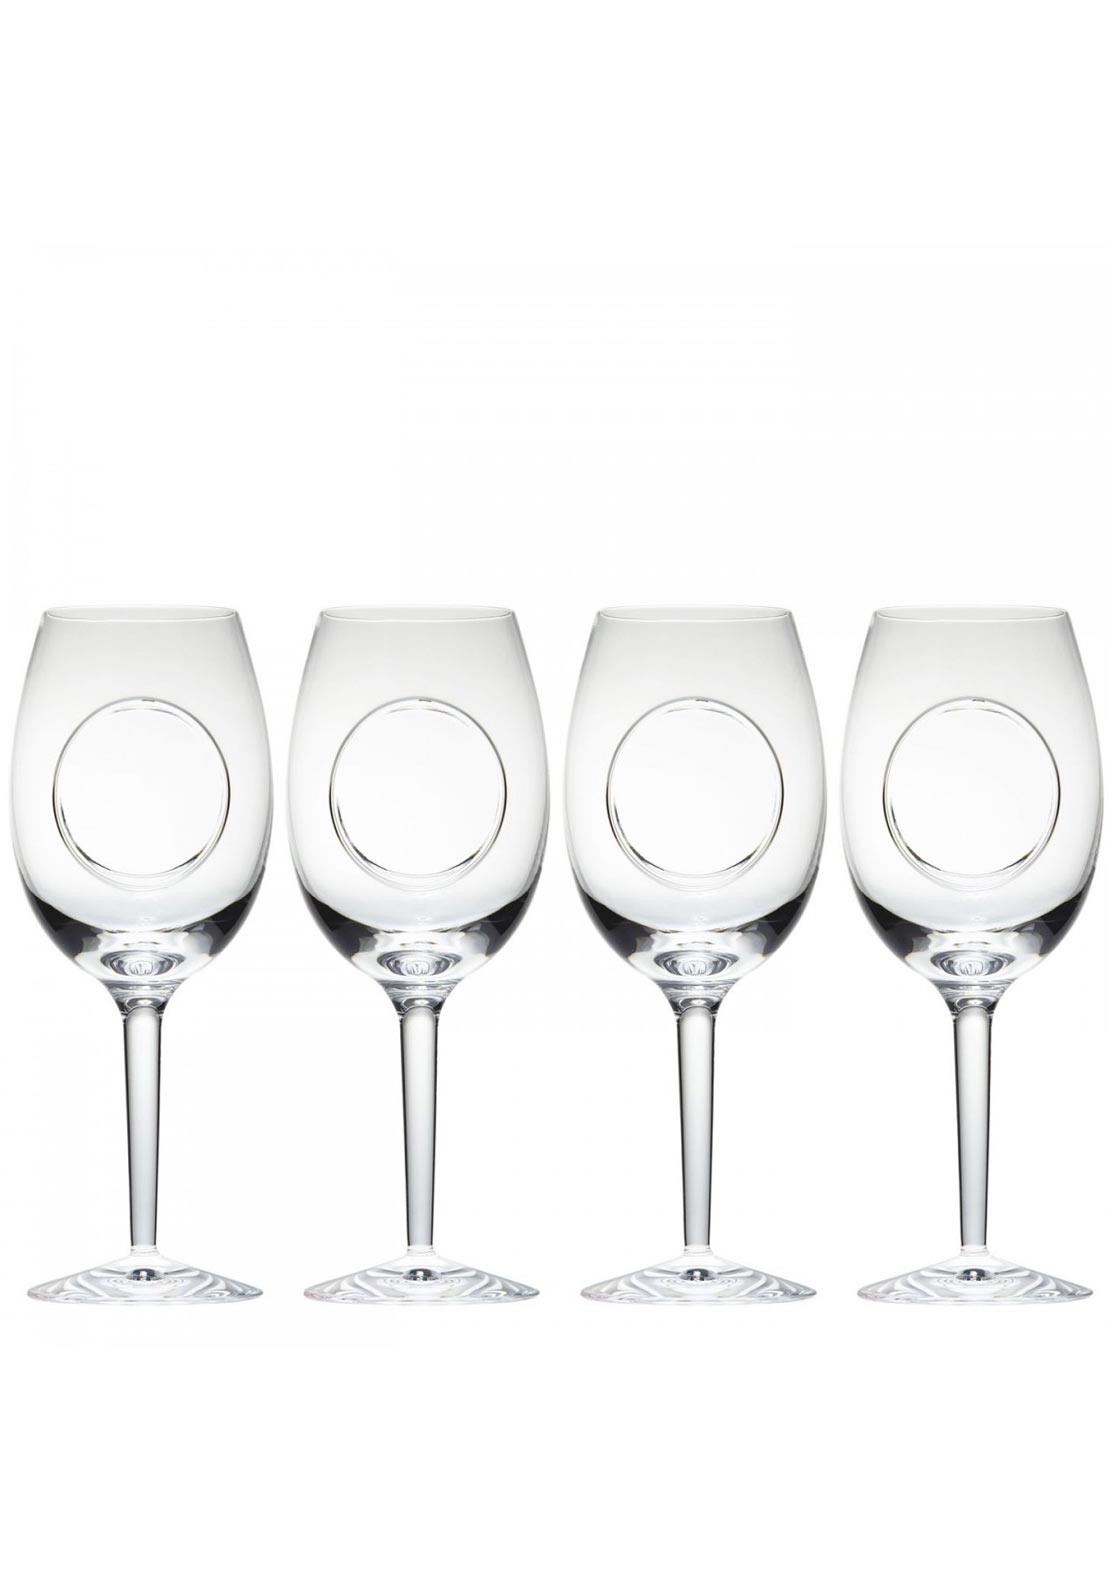 John Rocha at Waterford Circa Goblet Wine Glasses, Set of 4